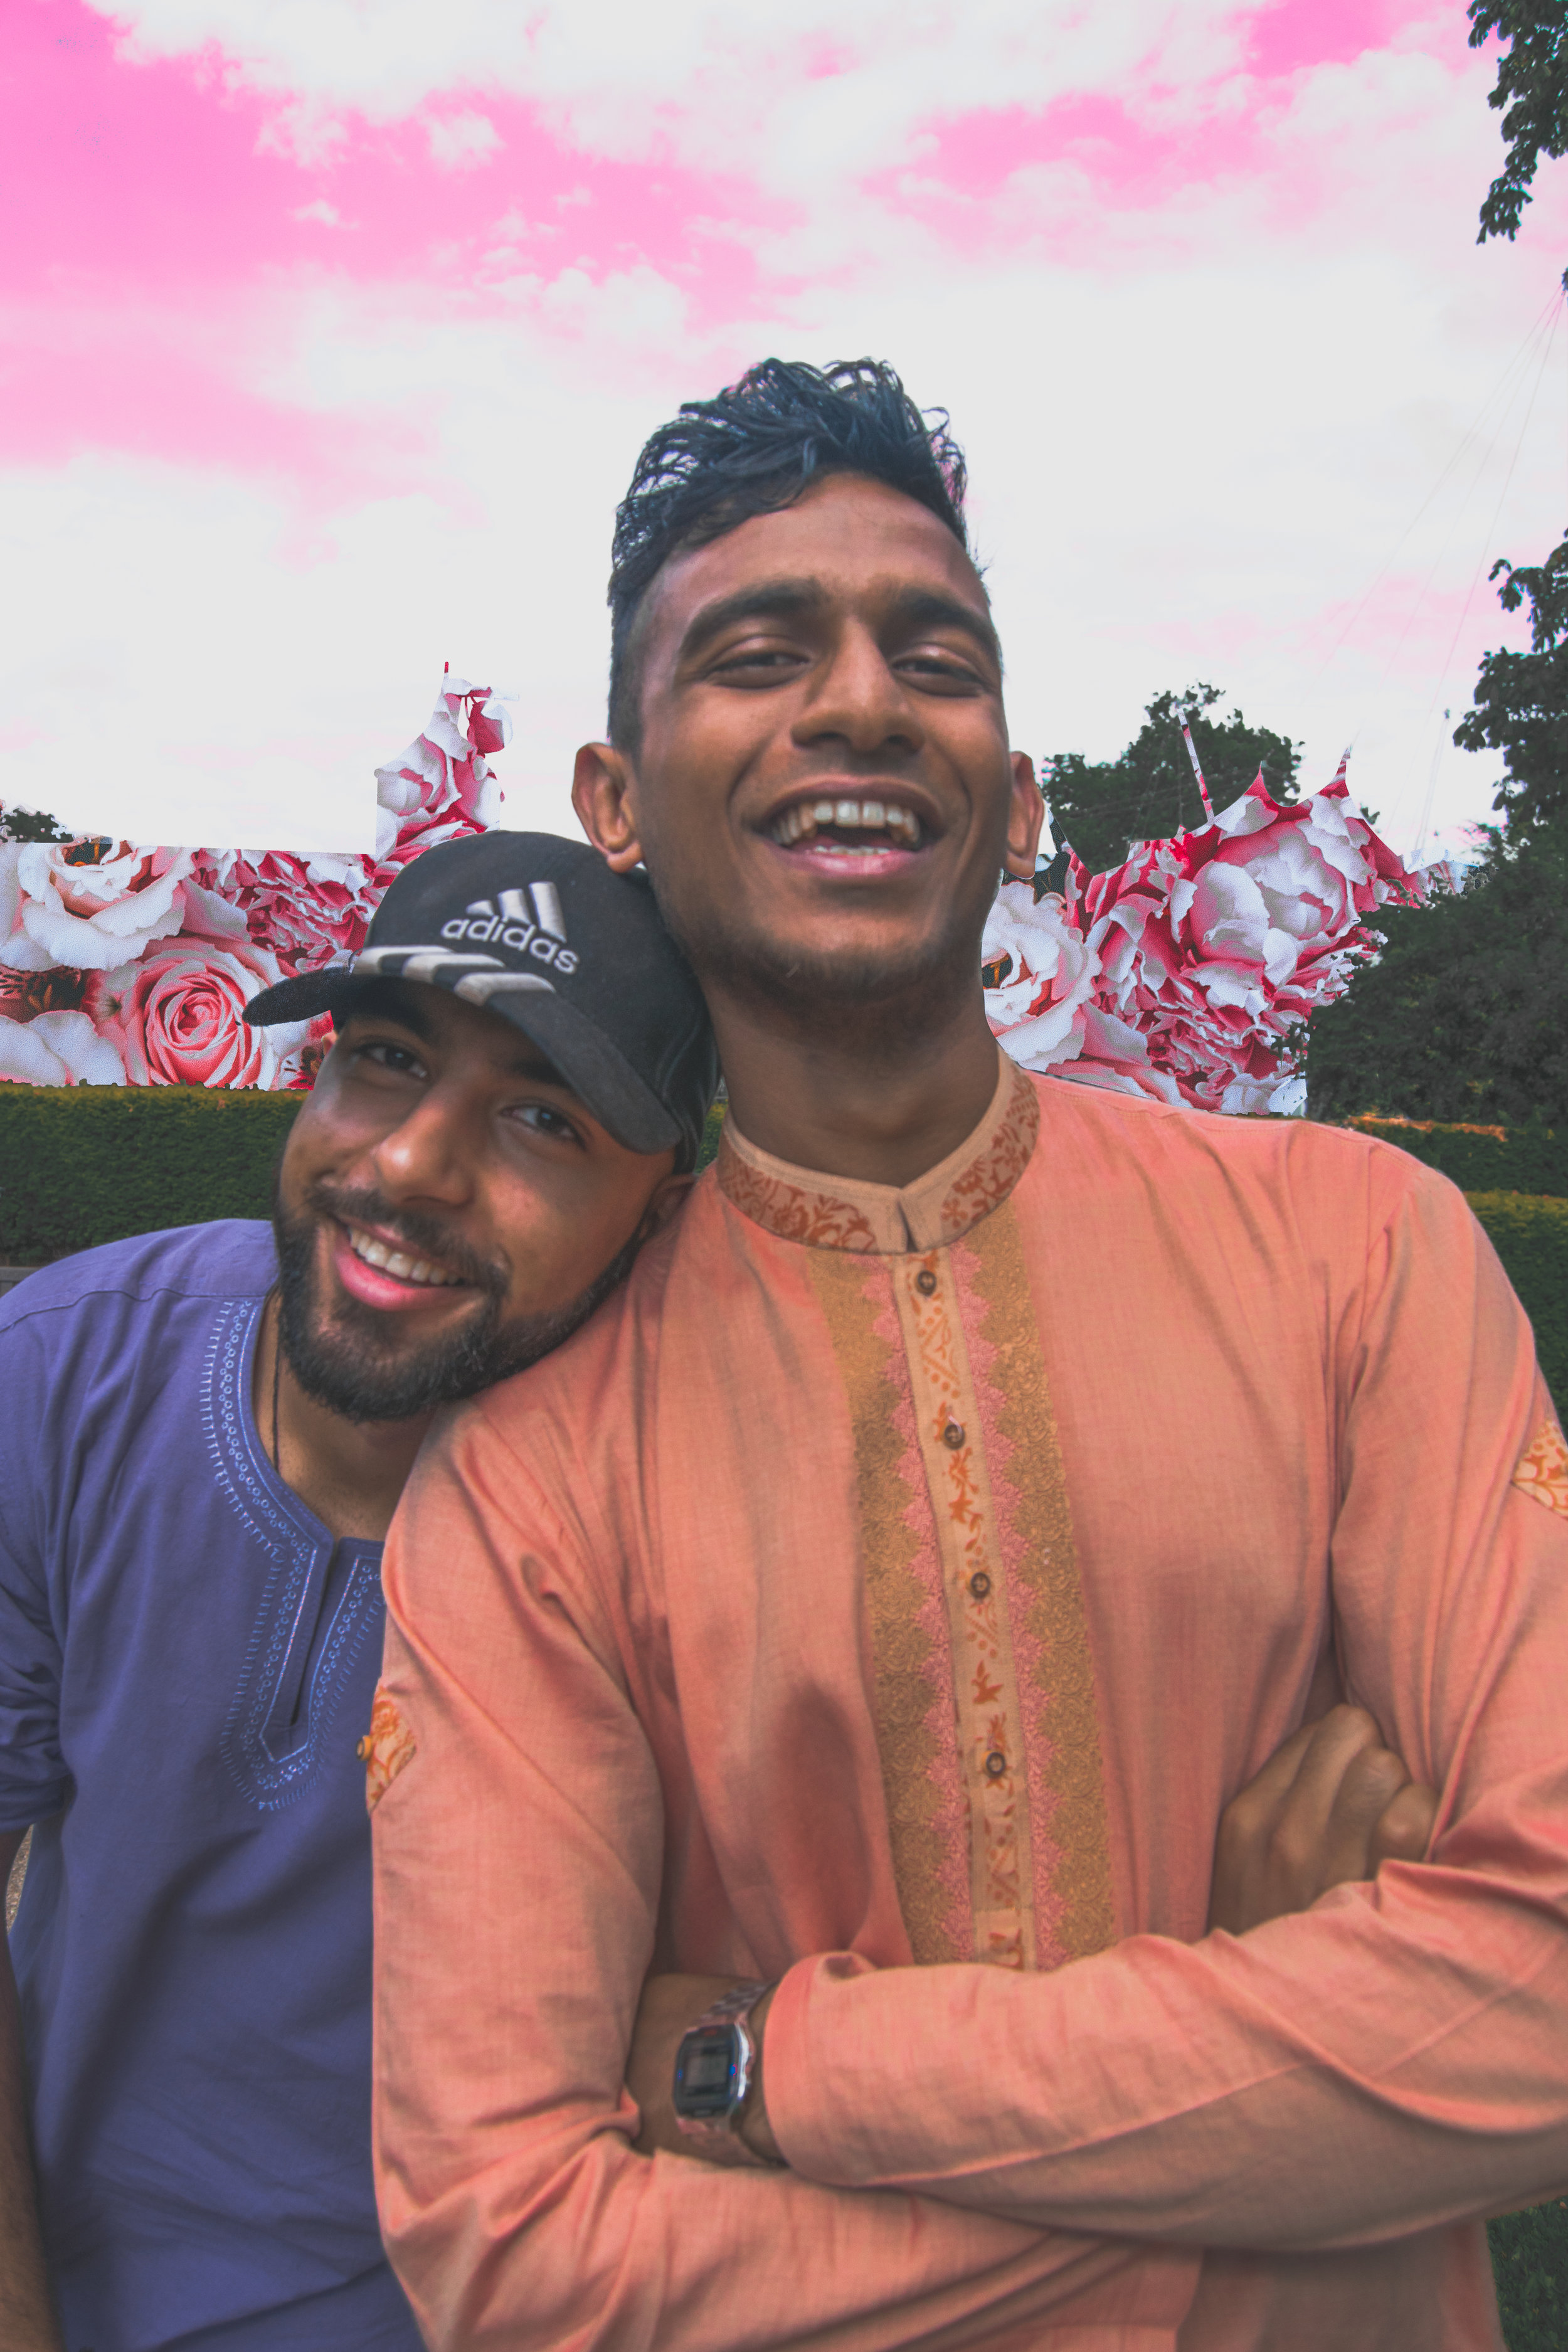 Waleed and T smiling 1-2.jpg